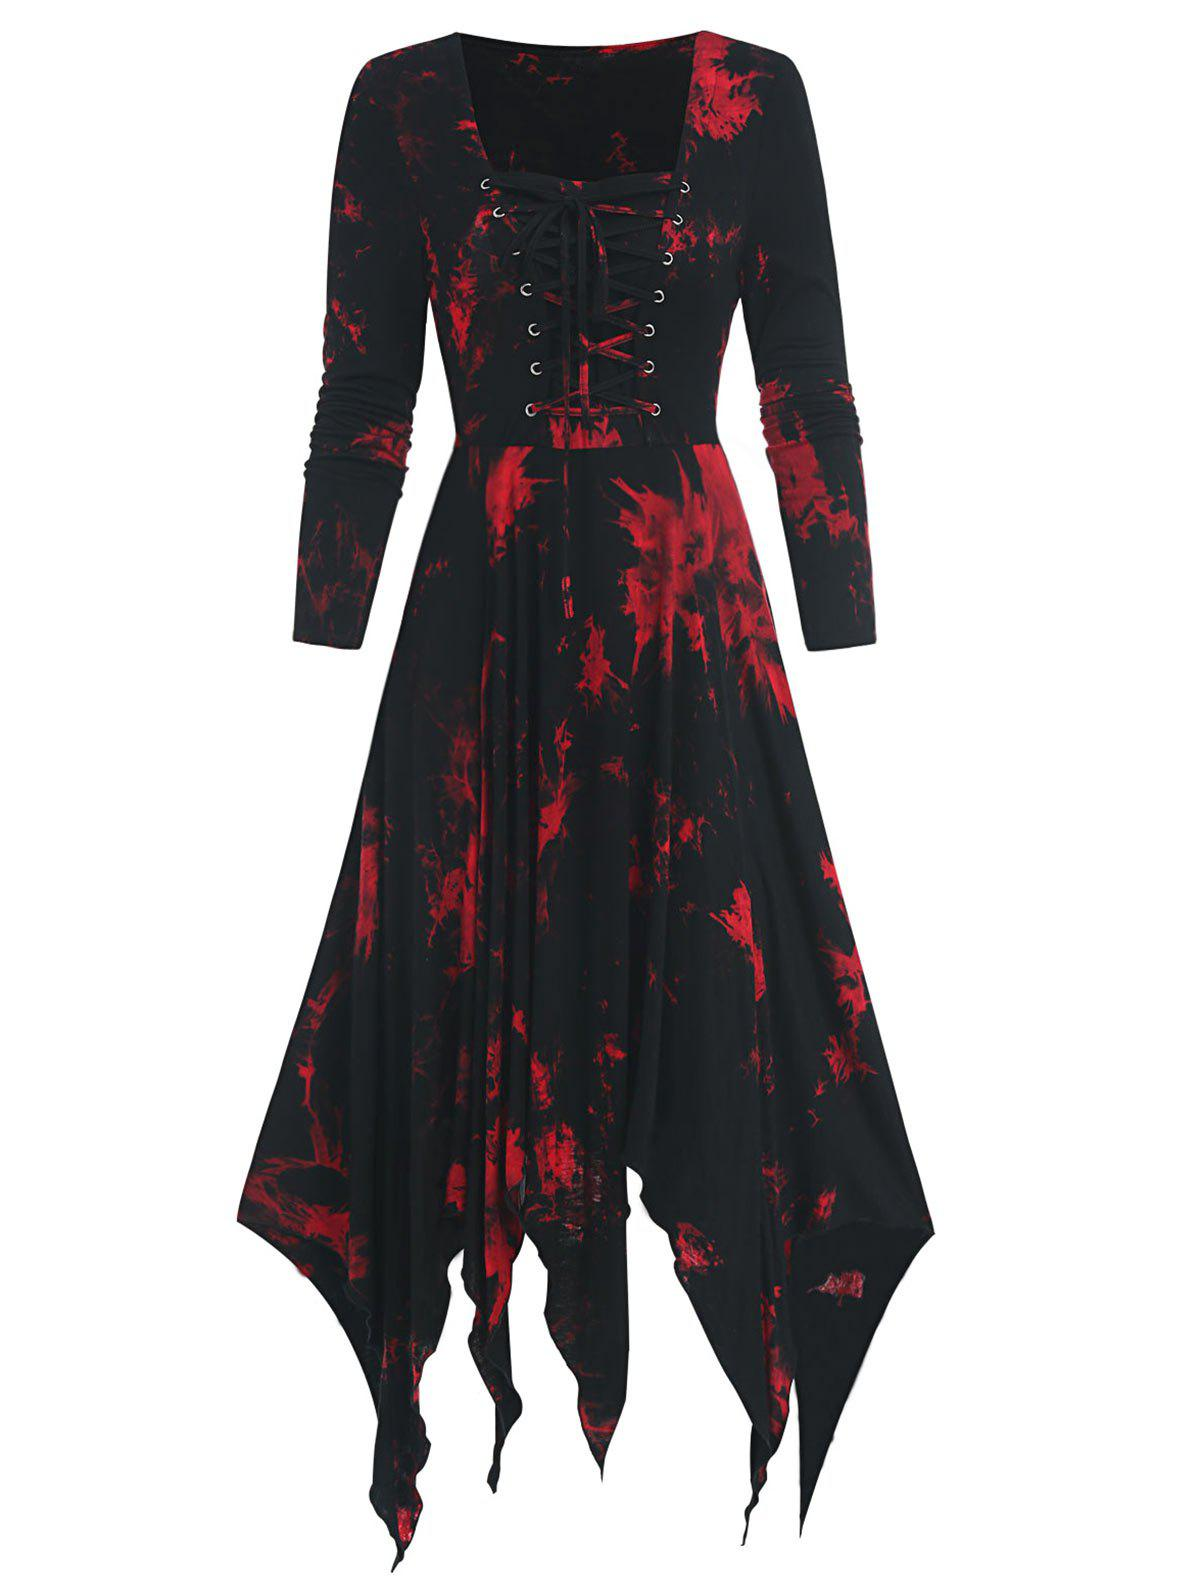 Cheap Tie Dye Print Long Sleeve Lace-up Handkerchief Dress